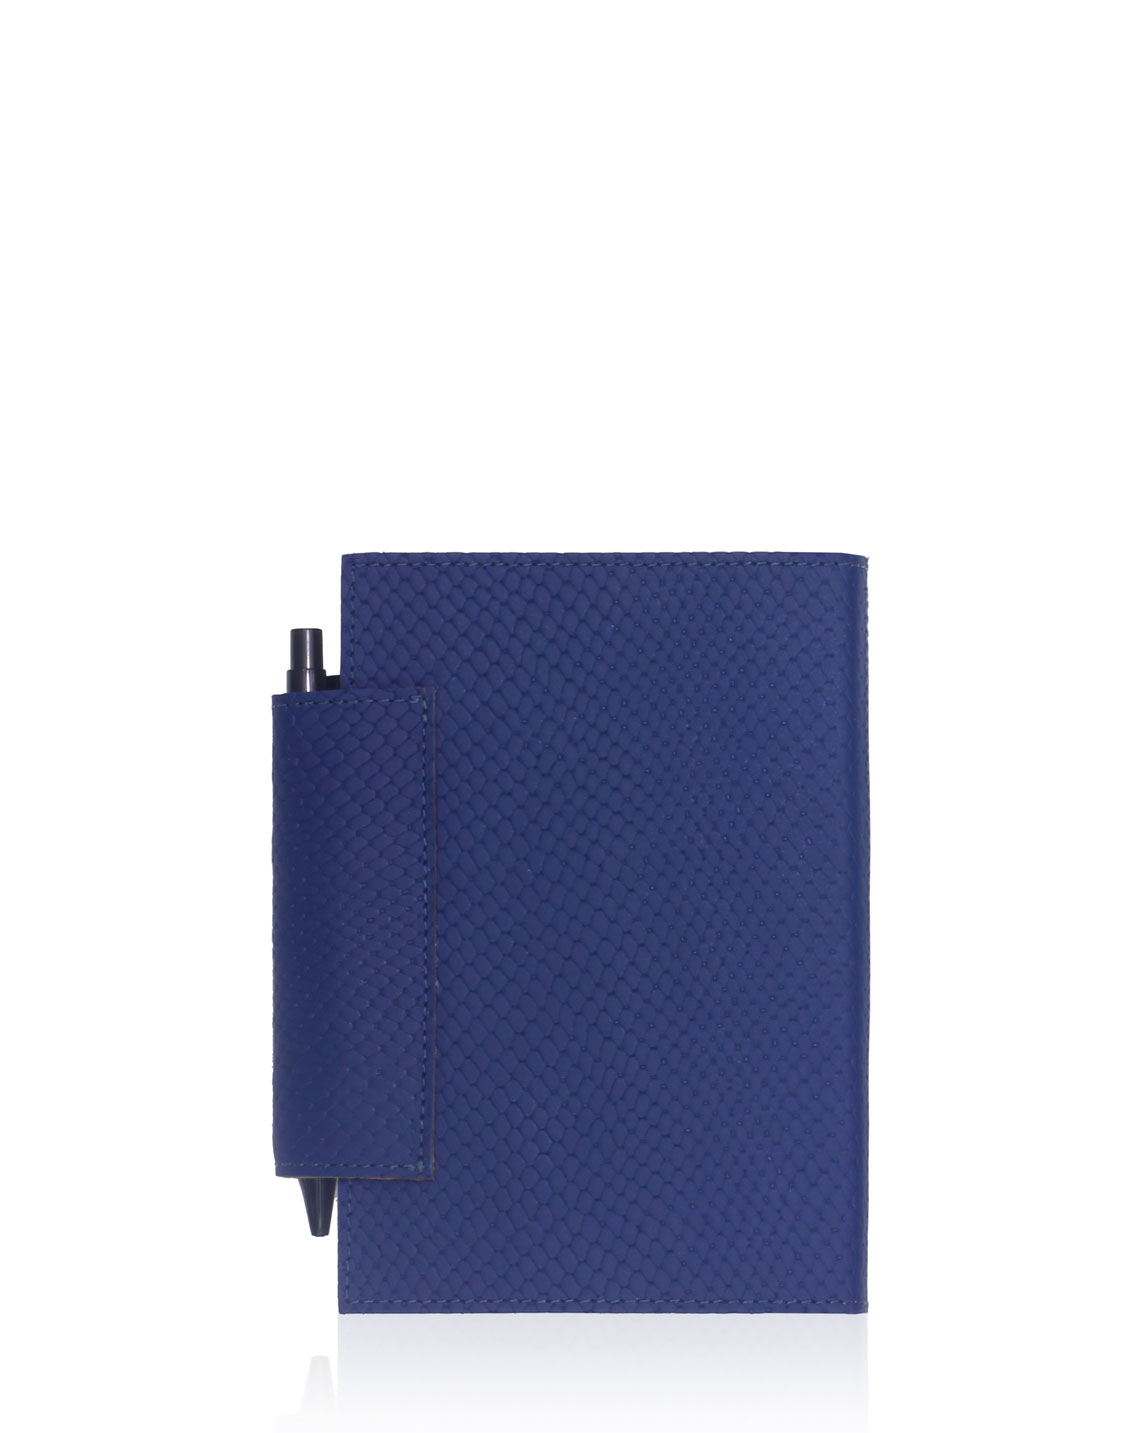 Agenda AG-120 Color Azul